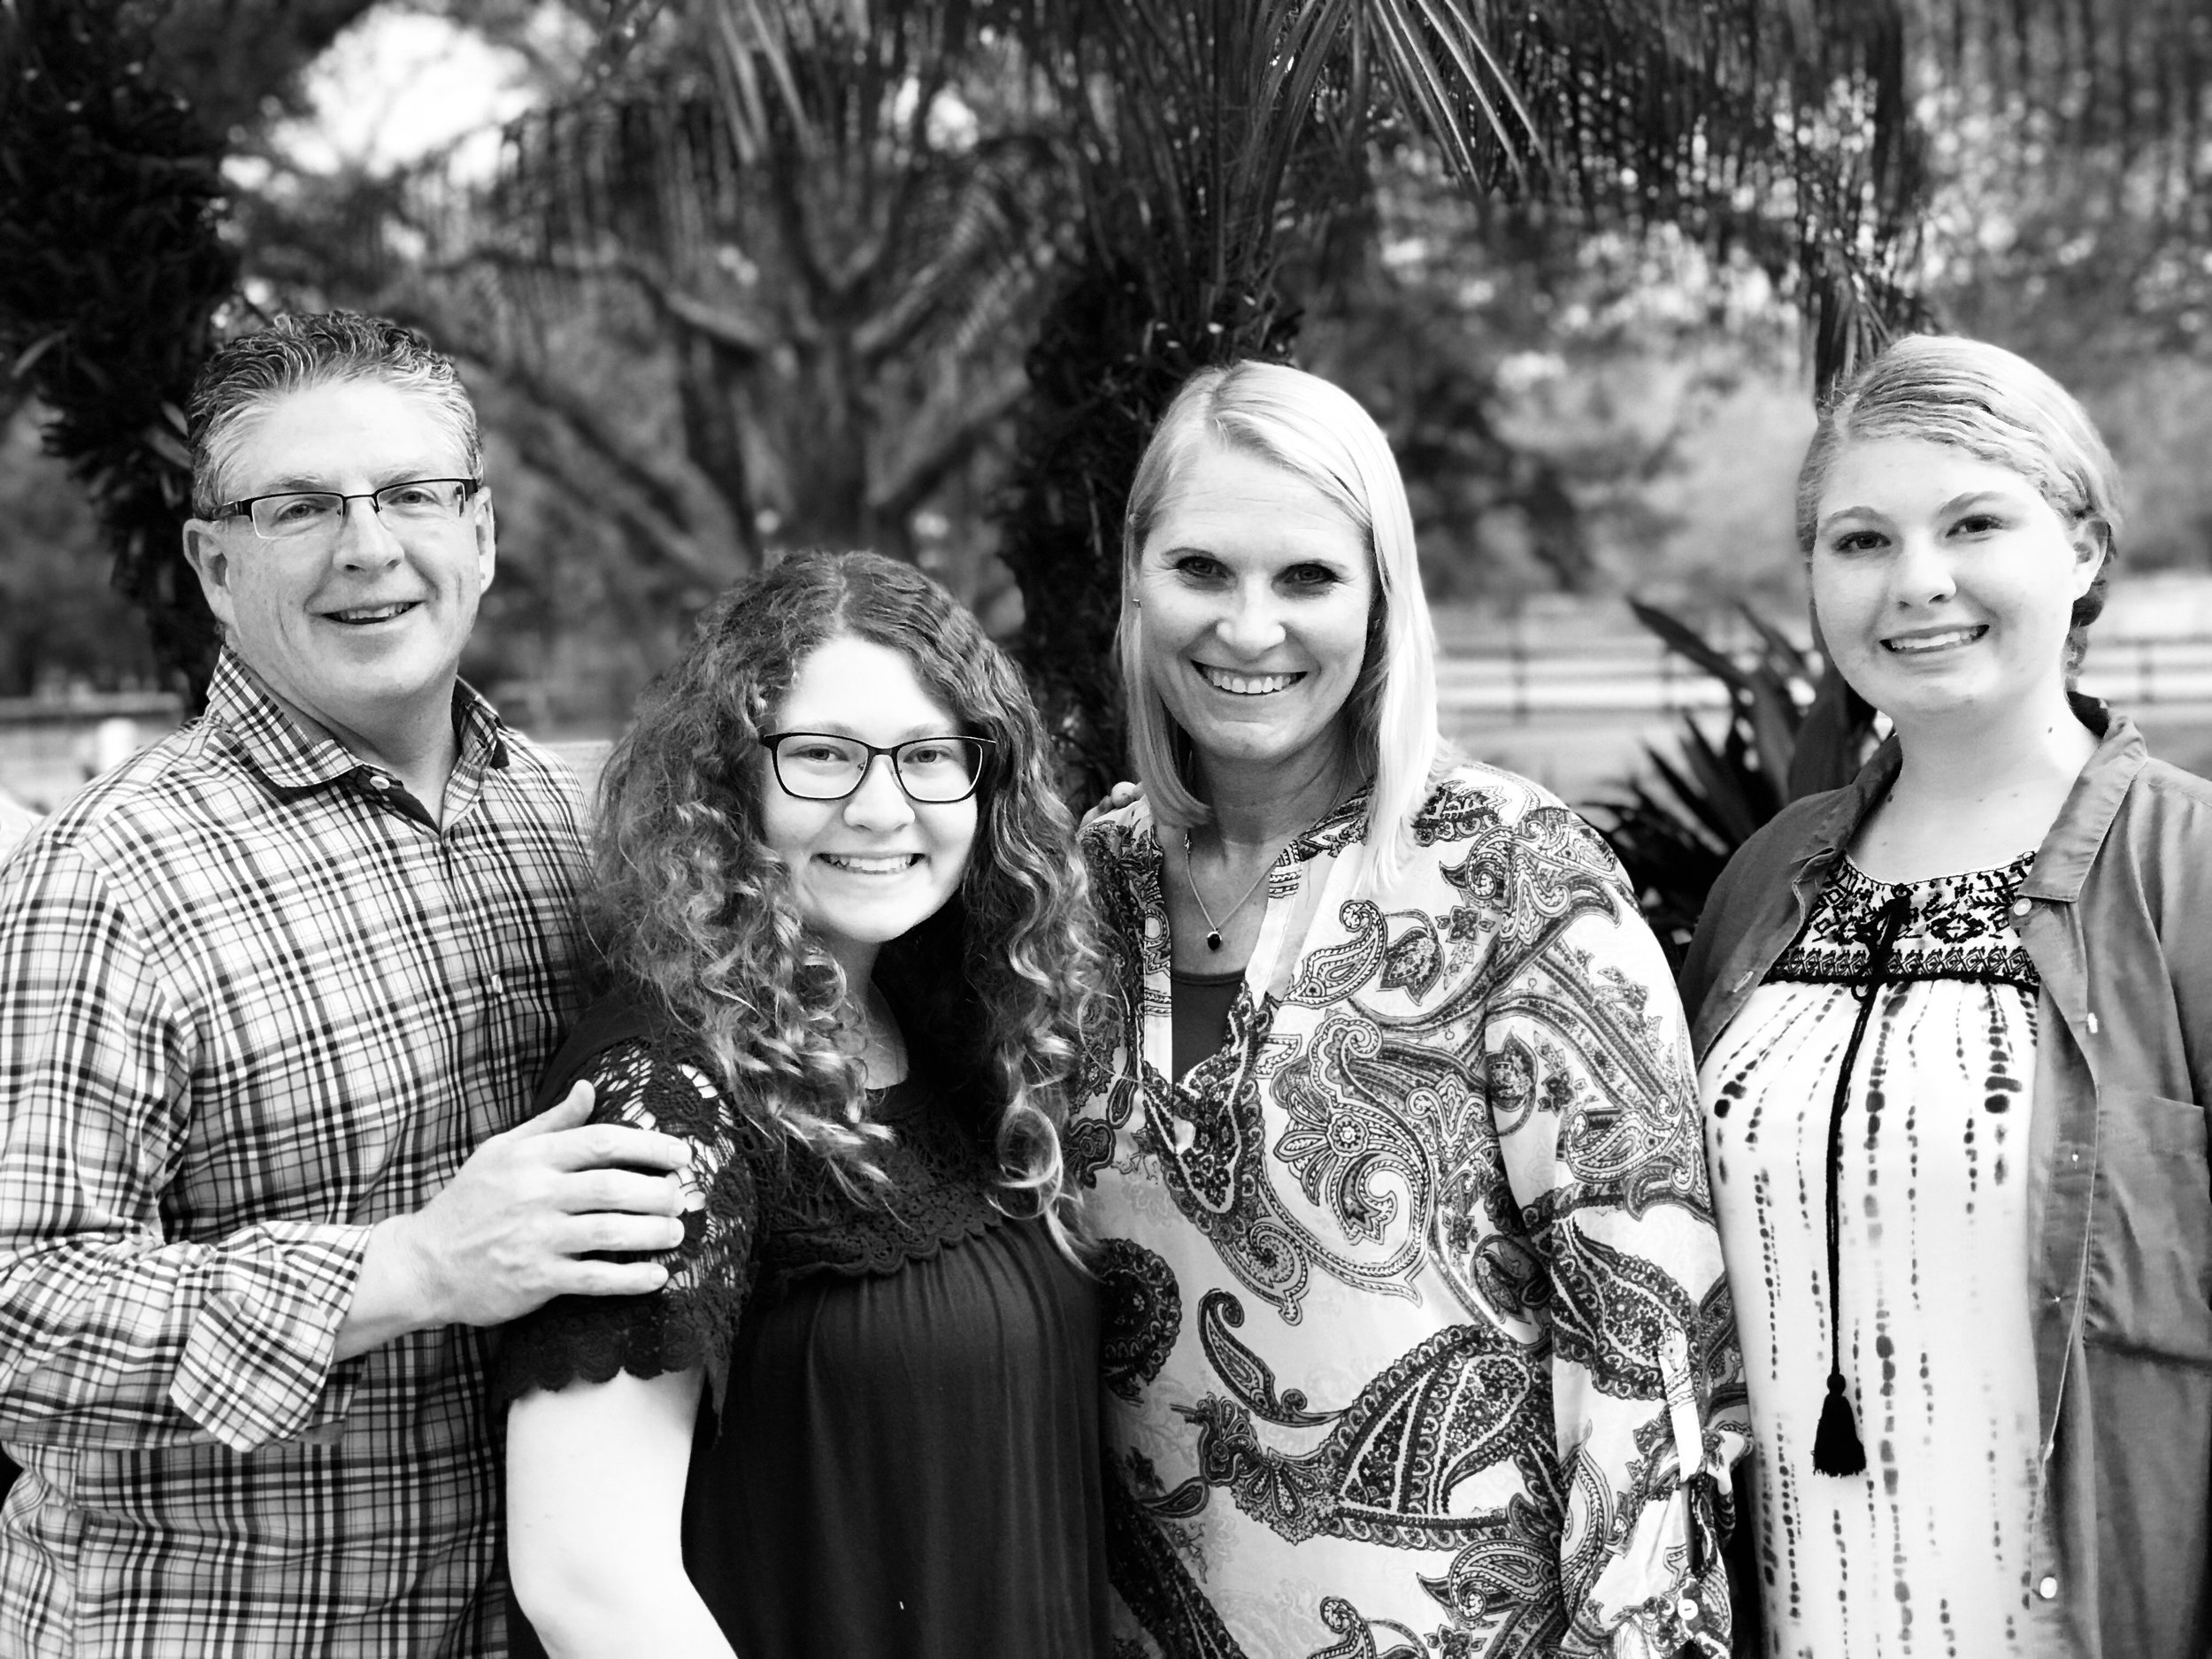 My beautiful partner Sandy, with her husband Paul, daughters Marissa, and Emma.